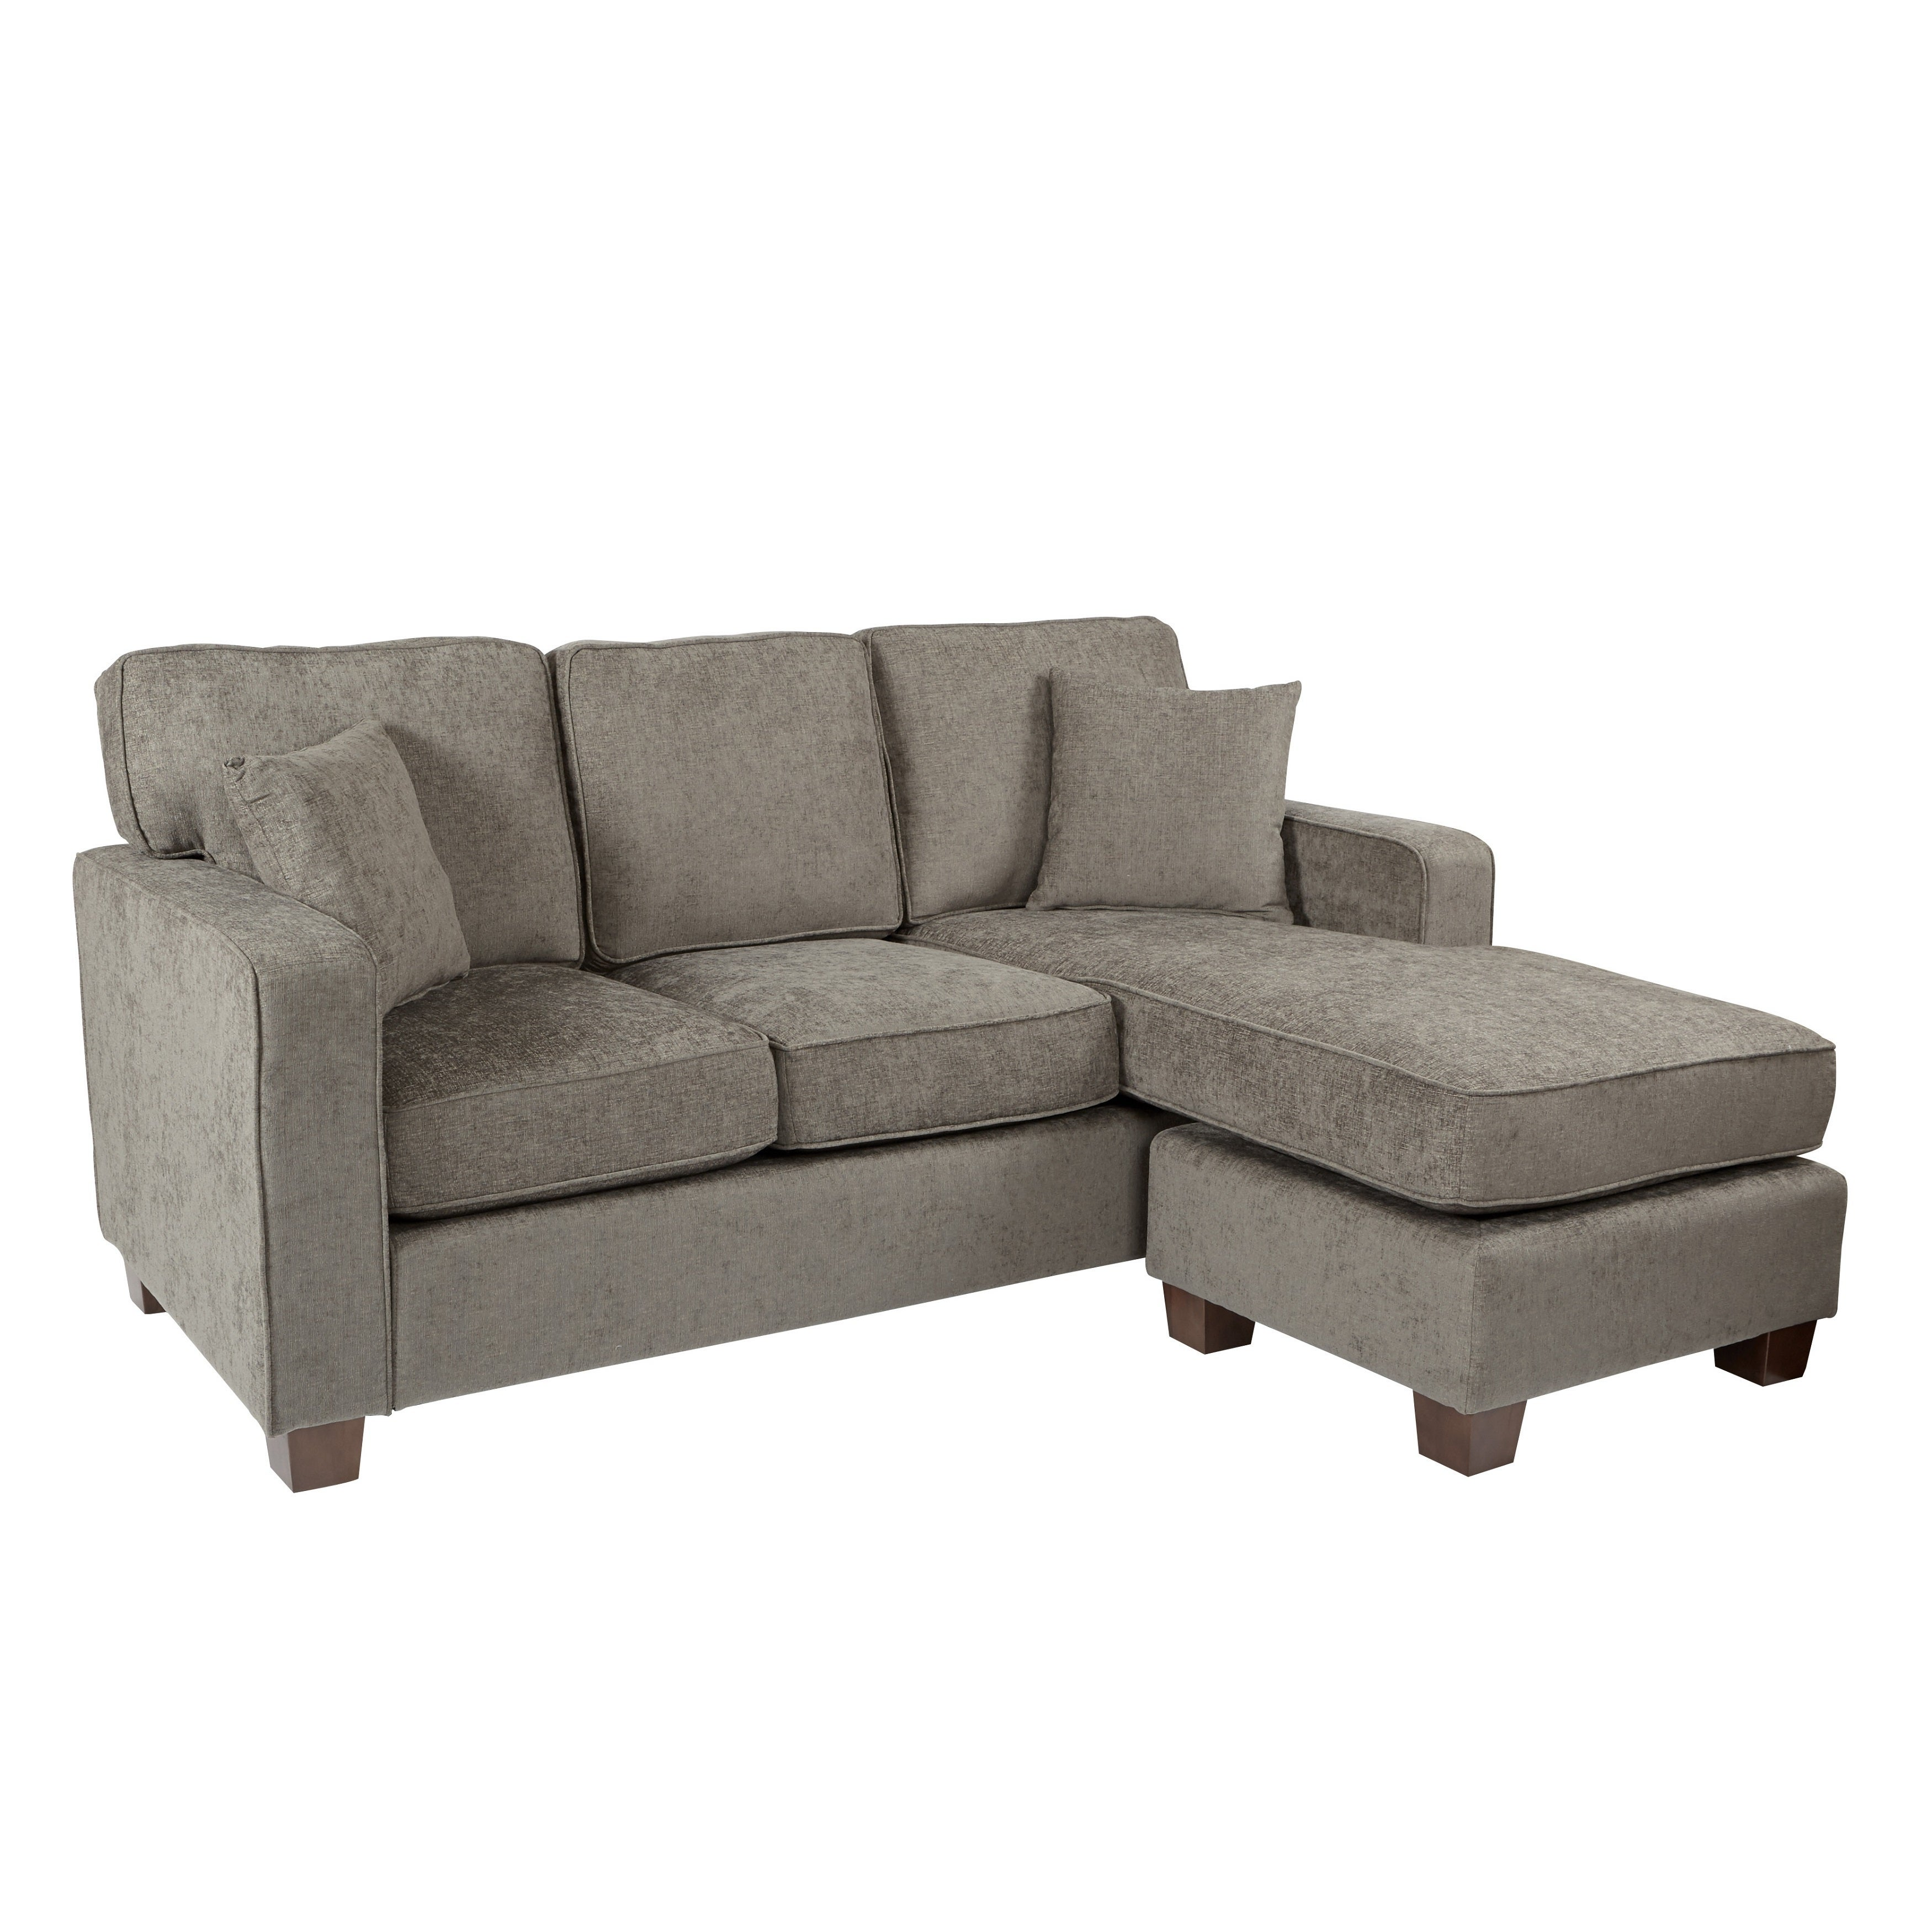 Porch U0026 Den Over The Rhine Renner Reversible Chaise Sectional Sofa   Free  Shipping Today   Overstock   23075361